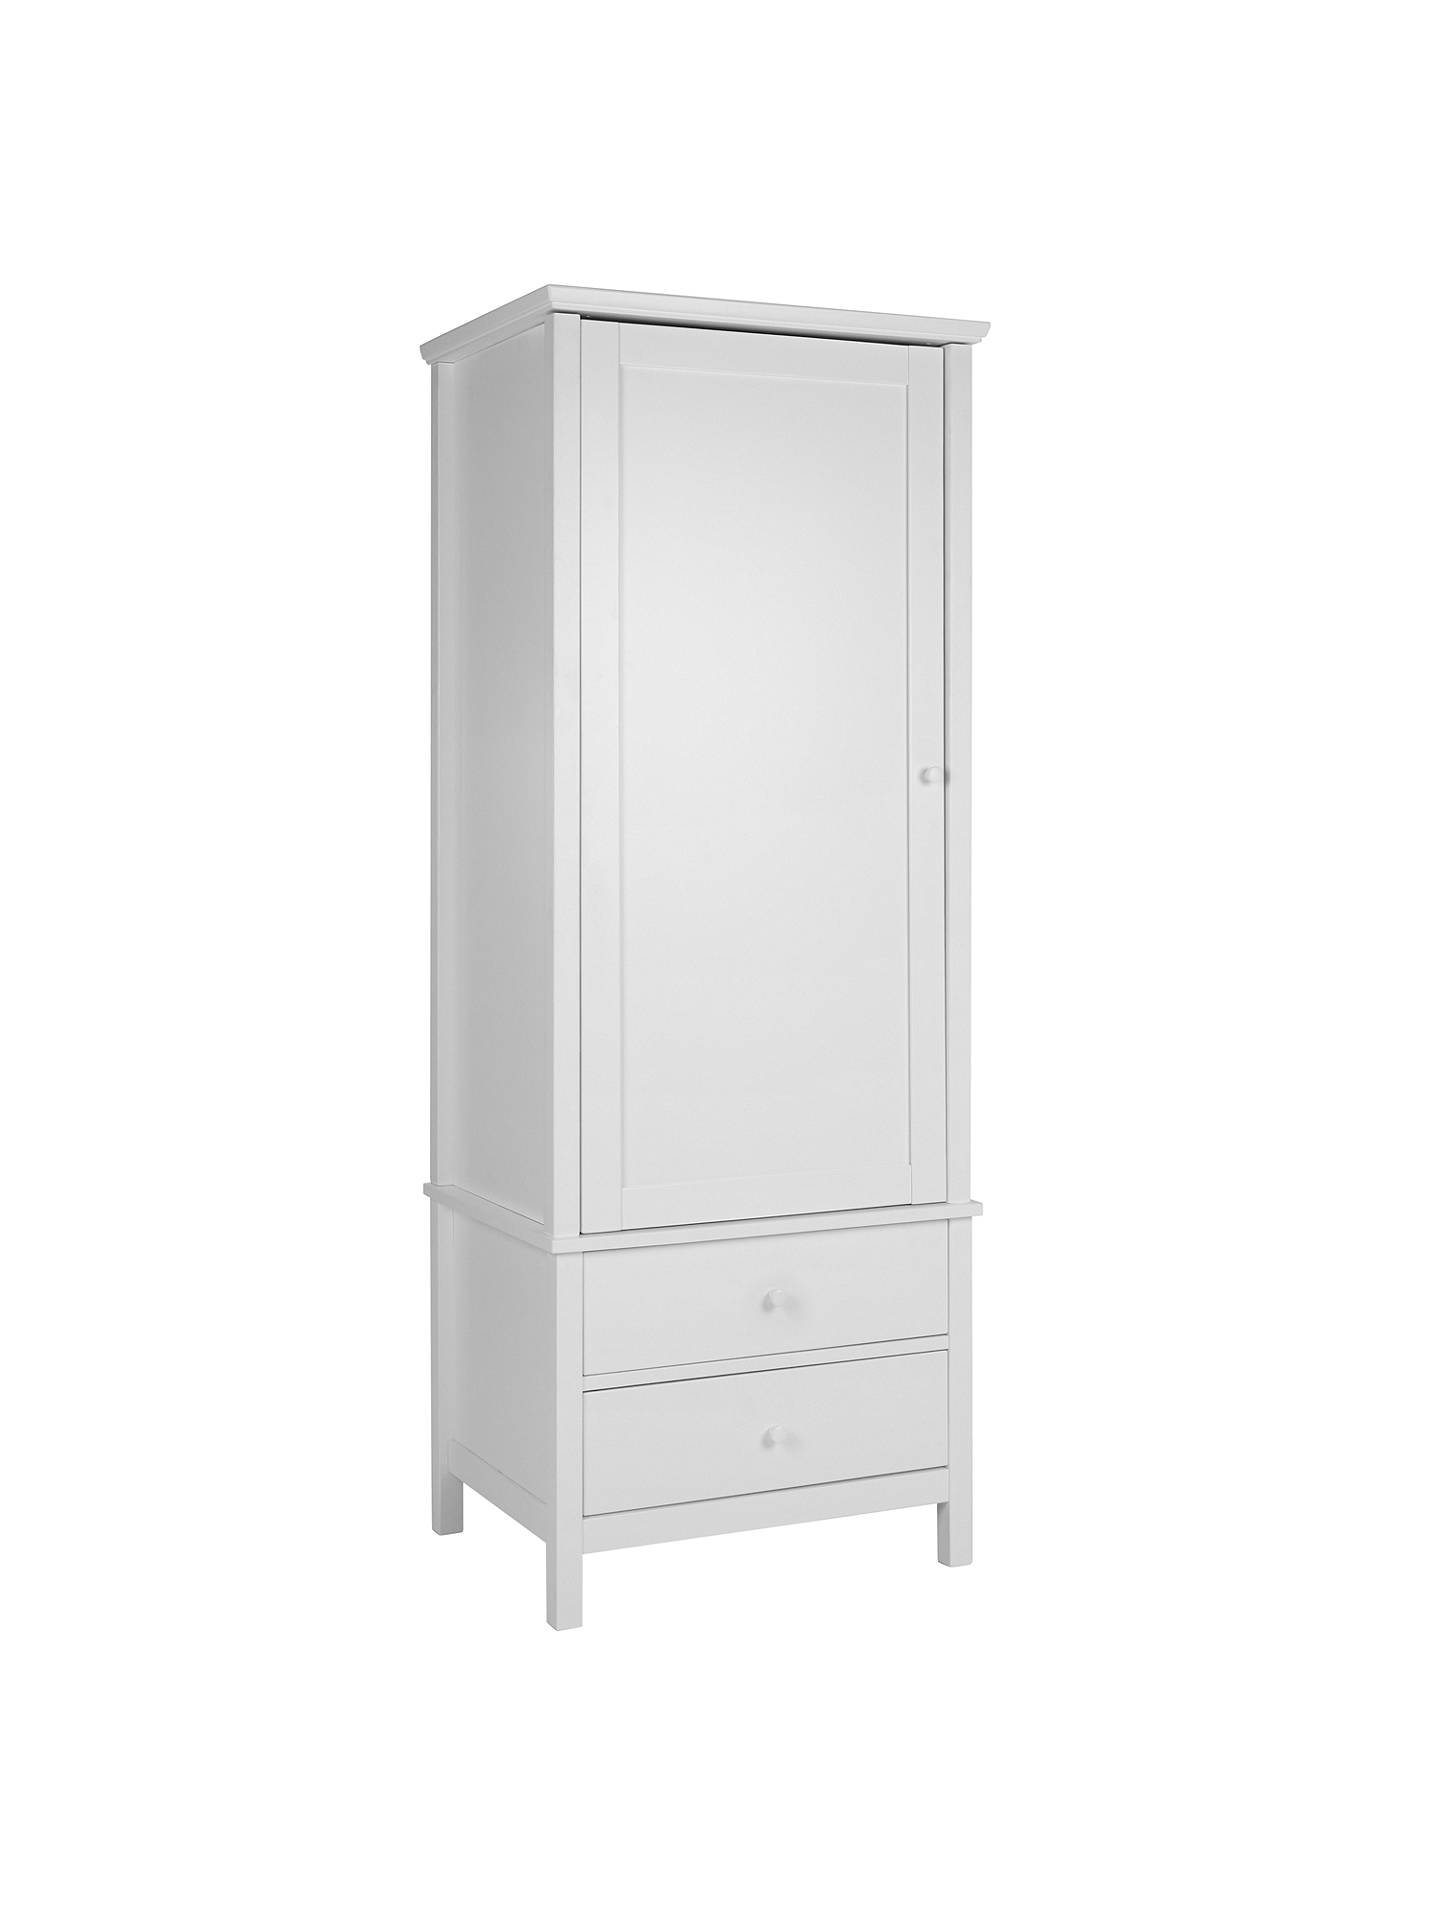 John Lewis Partners Wilton 1 Door Wardrobe At John Lewis Partners